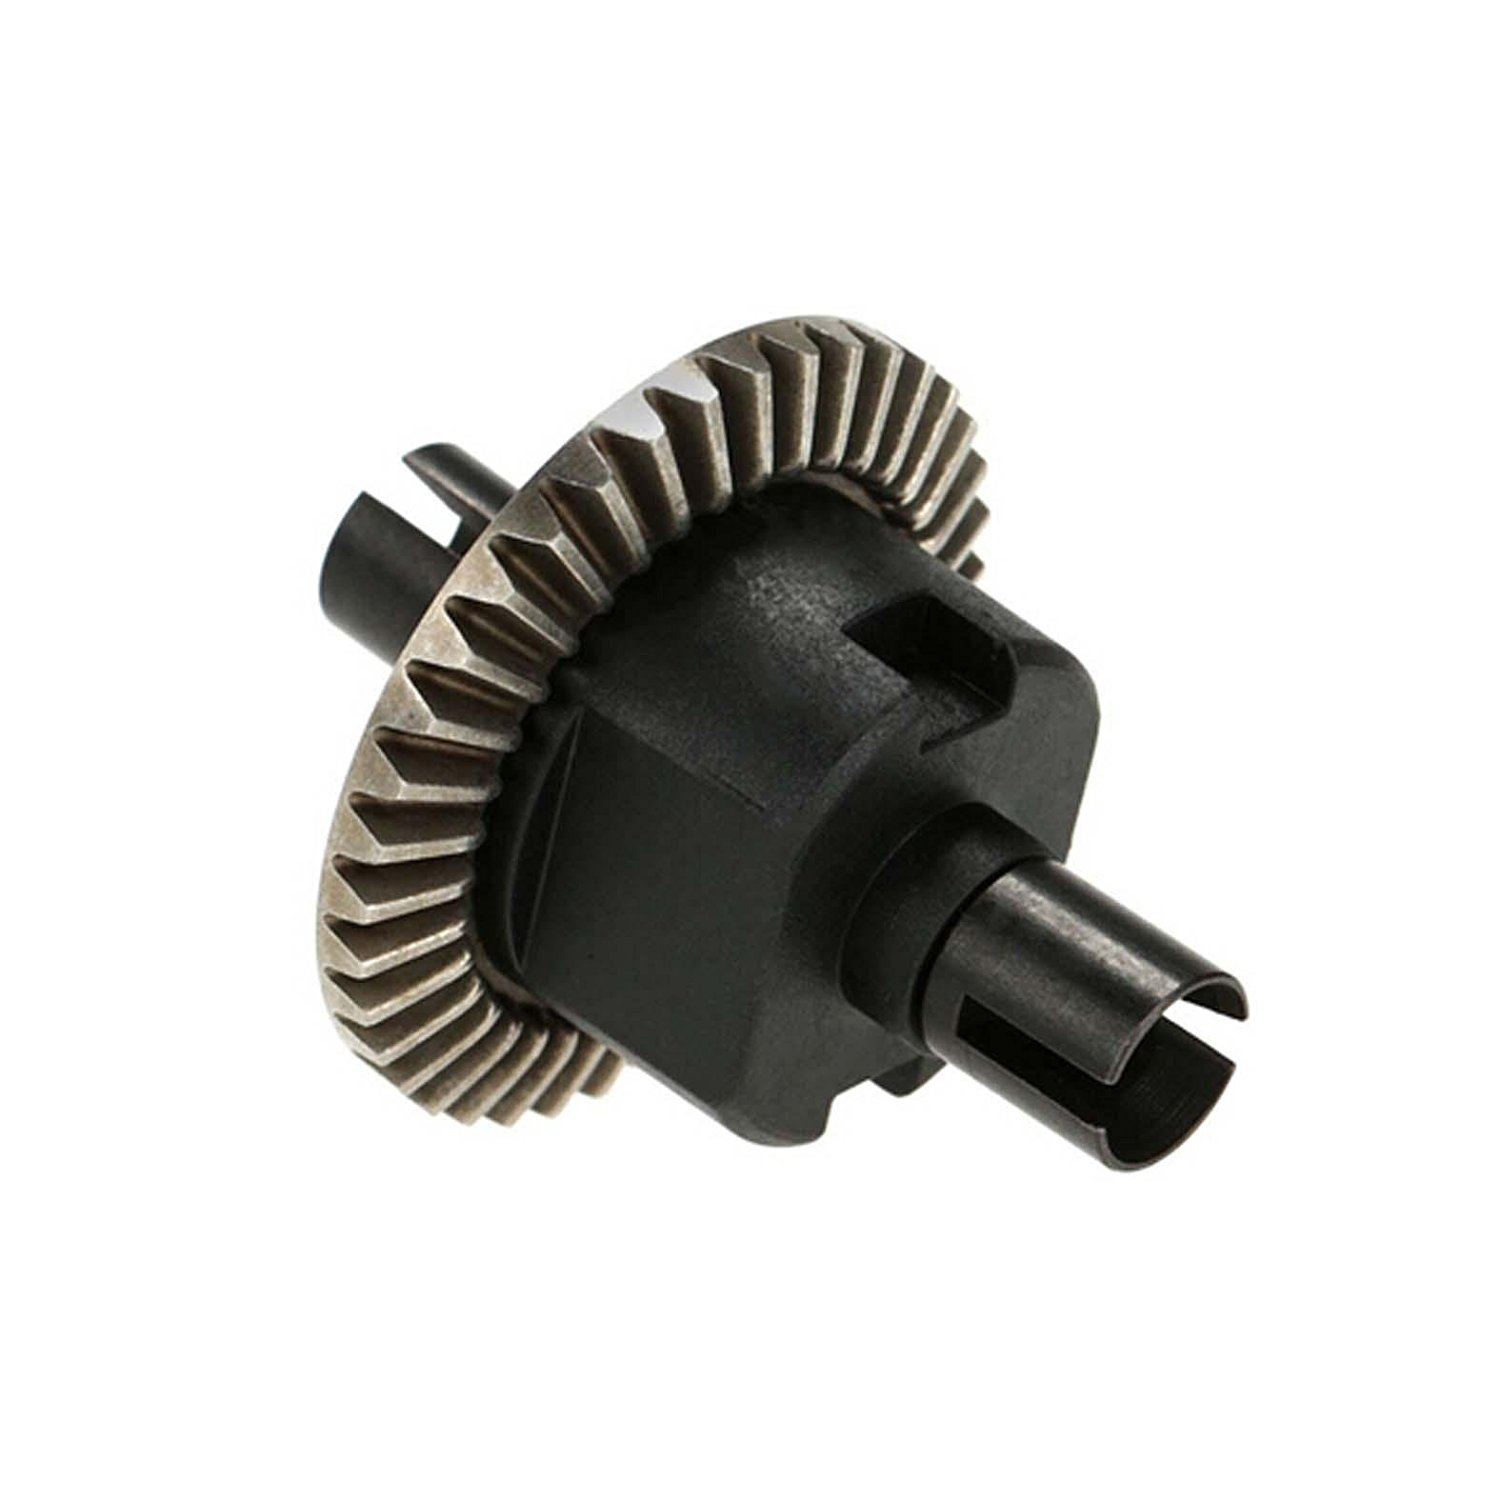 HOT SALE Gear Differential Set 02024 for HSP 1/10 Car Buggy Truck 94102 94123 94188 hsp 02024 differential diff gear complete 38t for 1 10 rc model car spare parts fit buggy monster